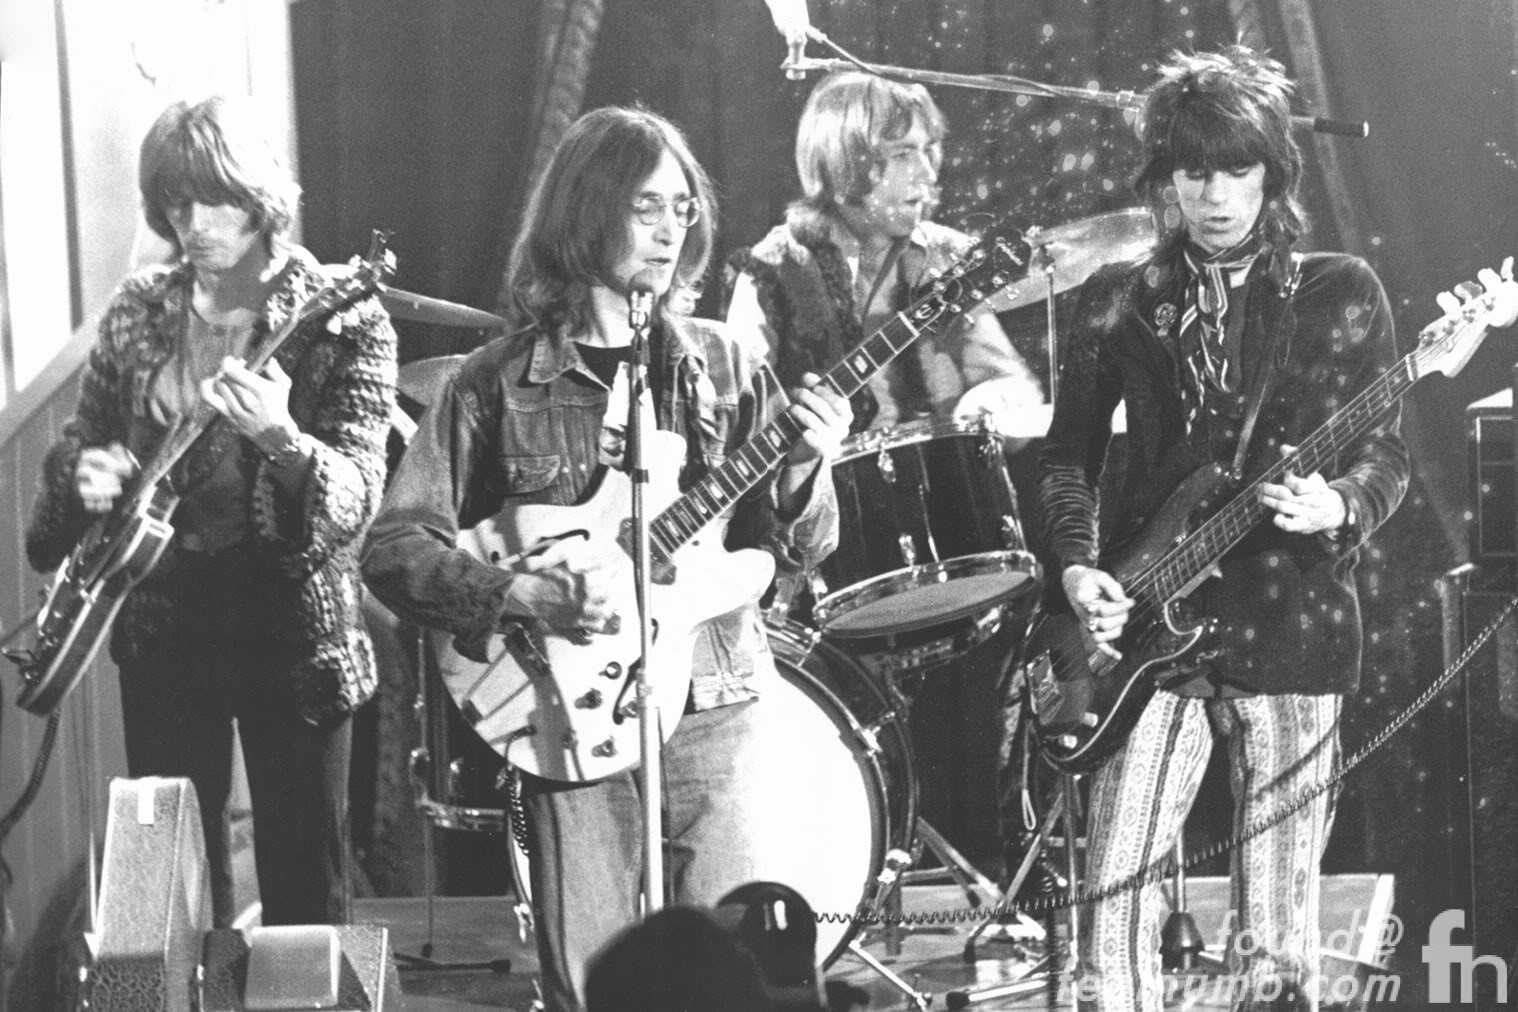 This is What Eric Clapton and John Lennon Looked Like  in 1968